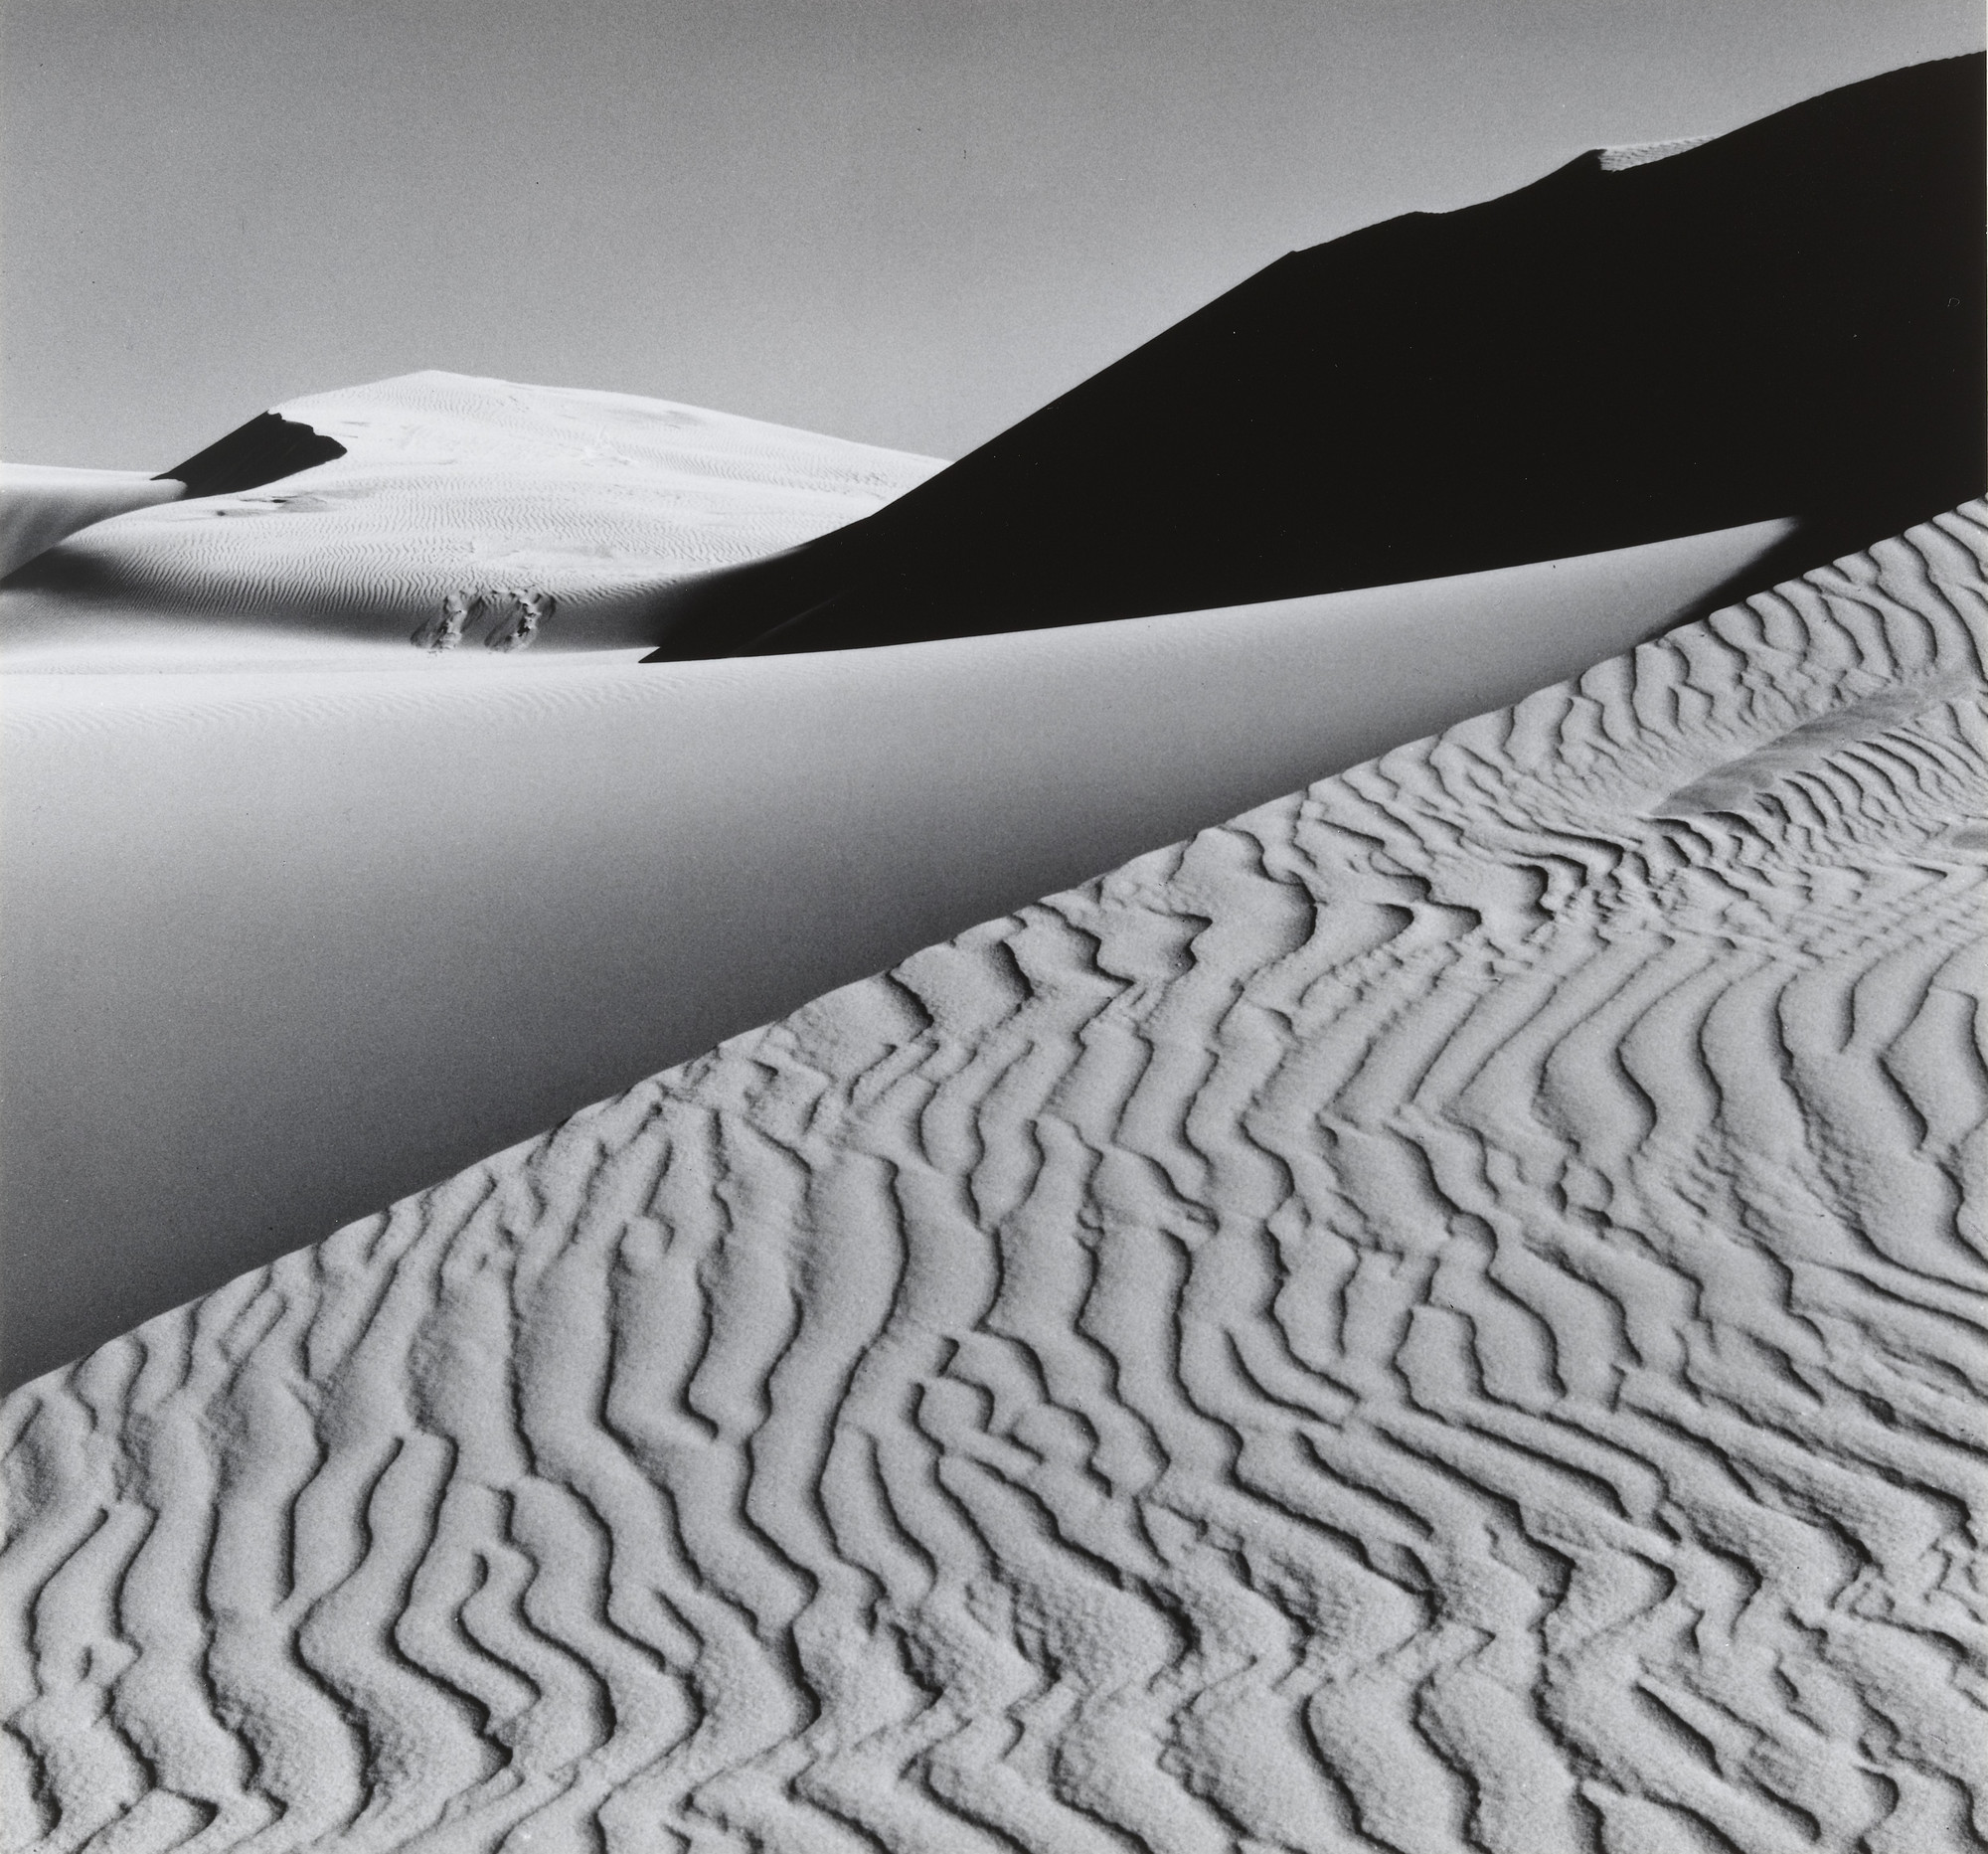 Ansel Adams. Dunes, Oceano, California. 1963